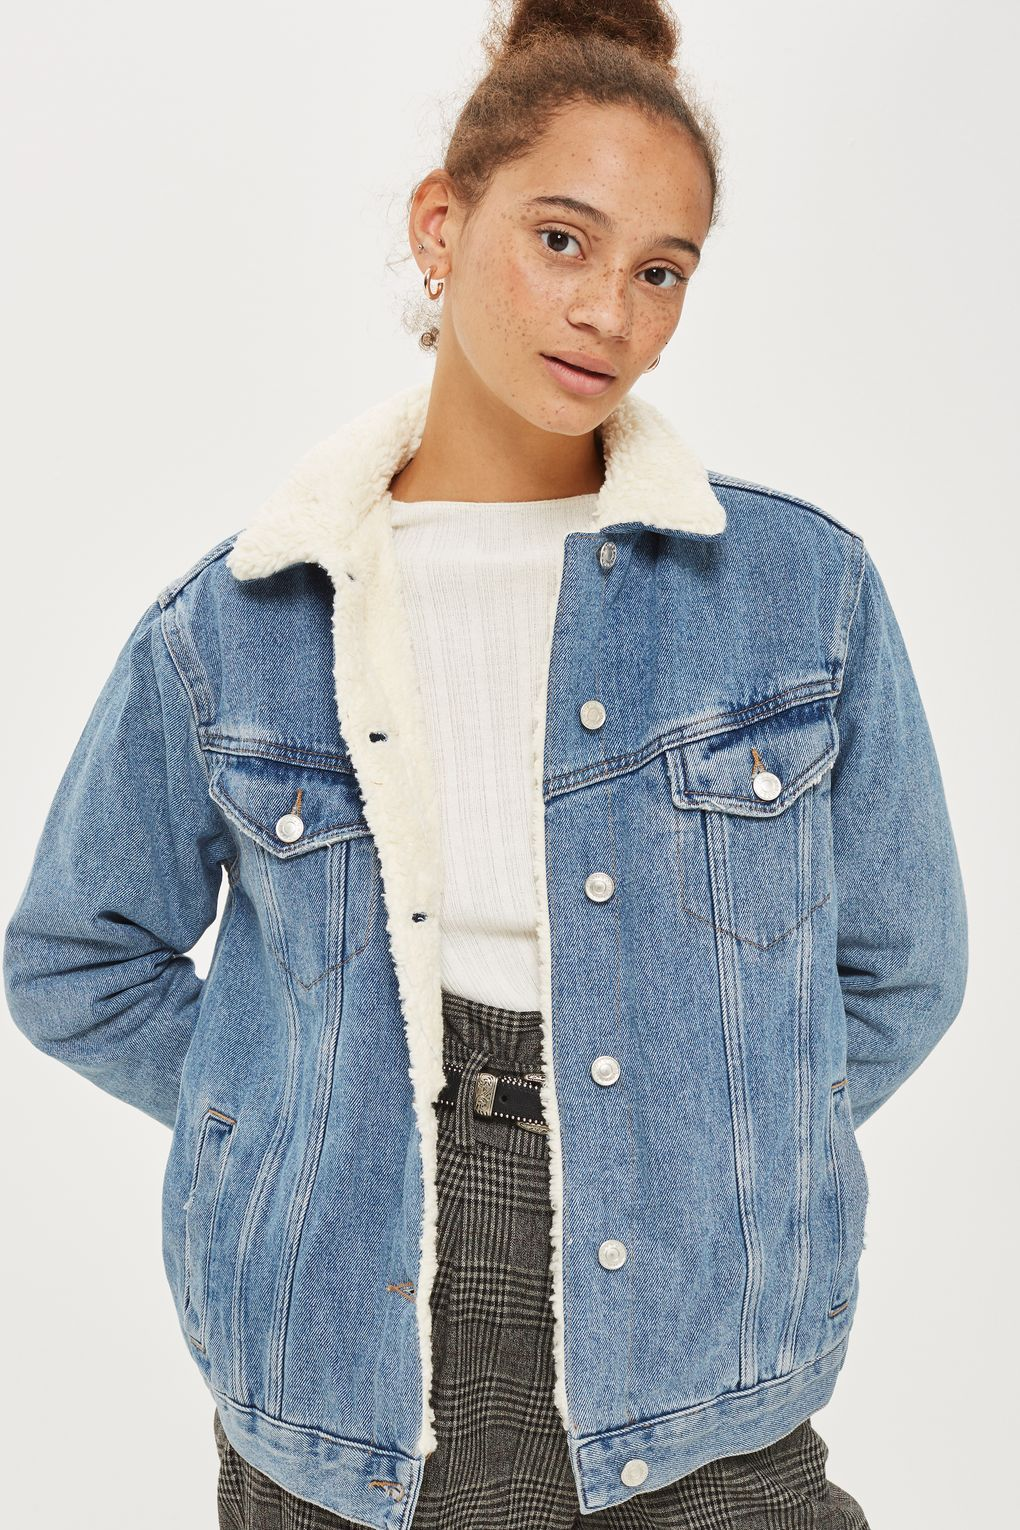 325ca7ea08a In washed blue denim this oversized jacket is a key new season look. Styled  with a plush cream borg collar and lining, it comes with buttons through  the ...